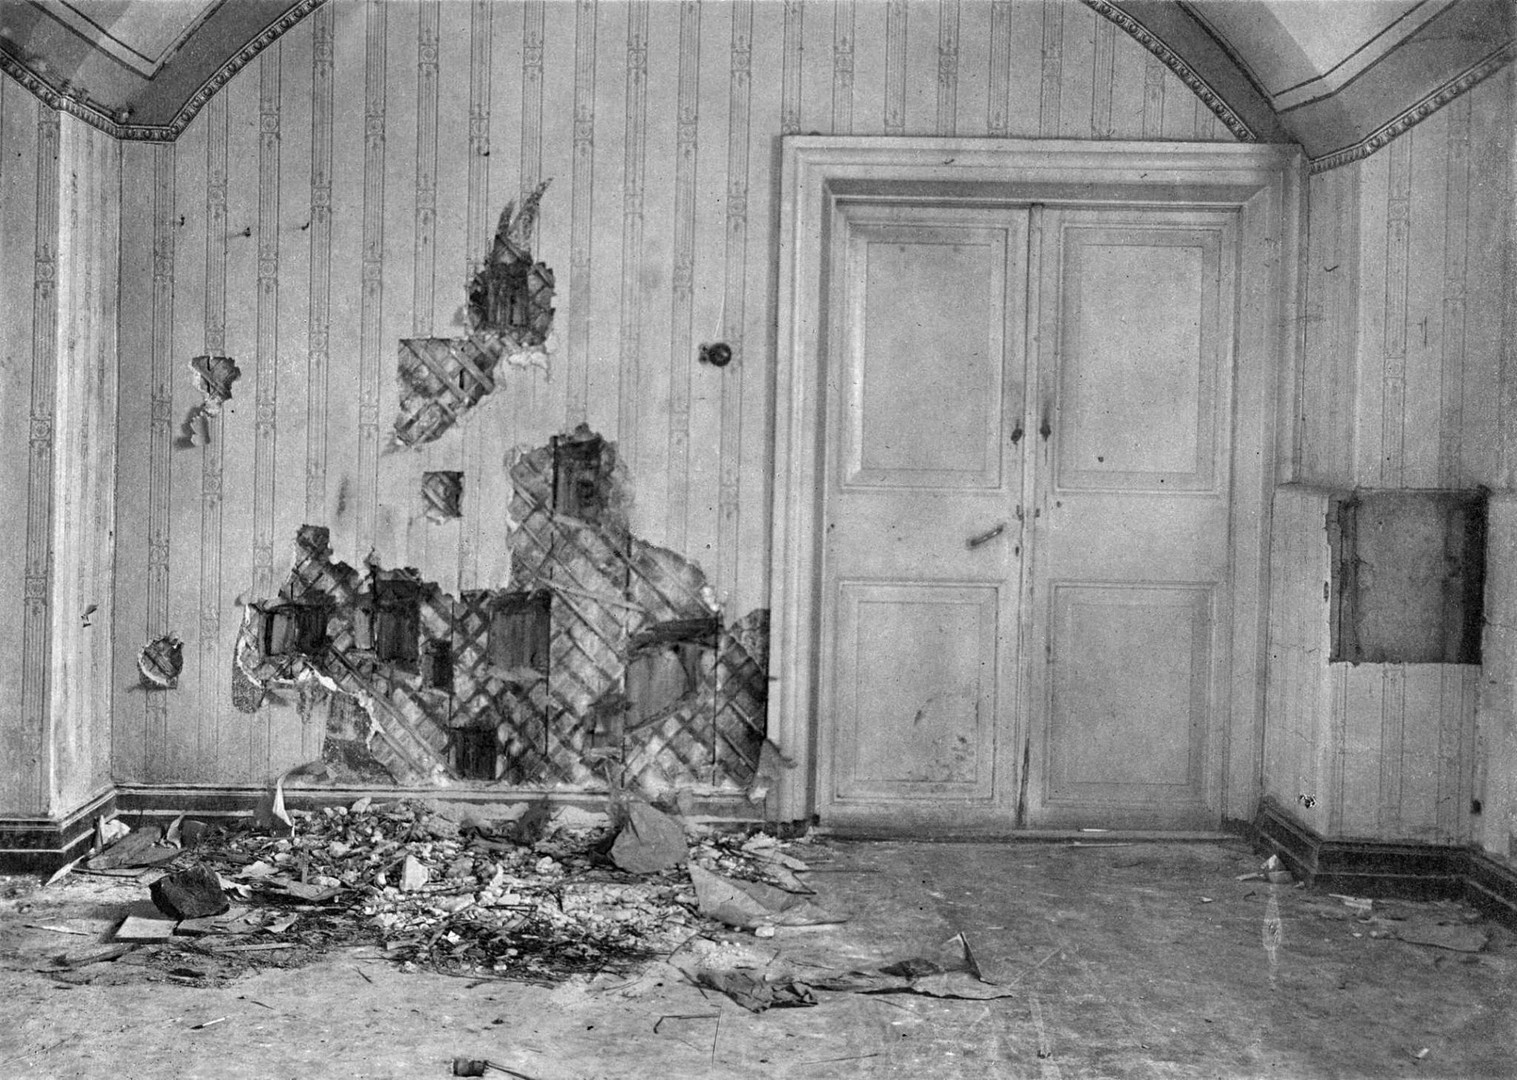 Room in the Ipatiev House, Yekaterinburg, where the Russian Royal family was murdered, 1918.